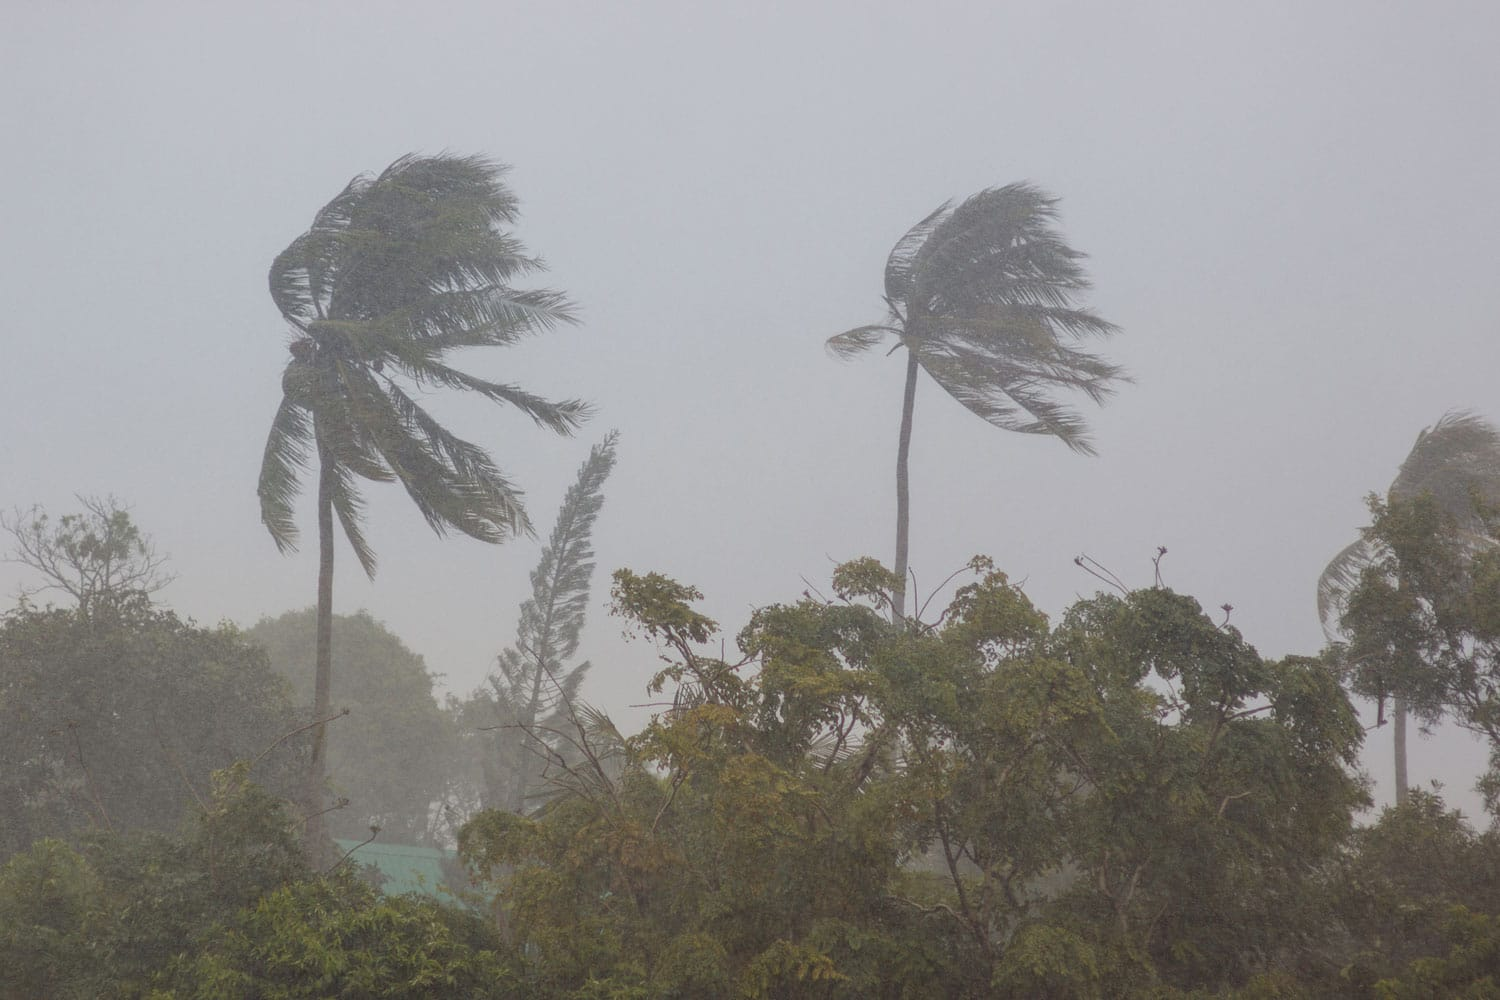 What Do I Need to Know About Hurricane Safety?